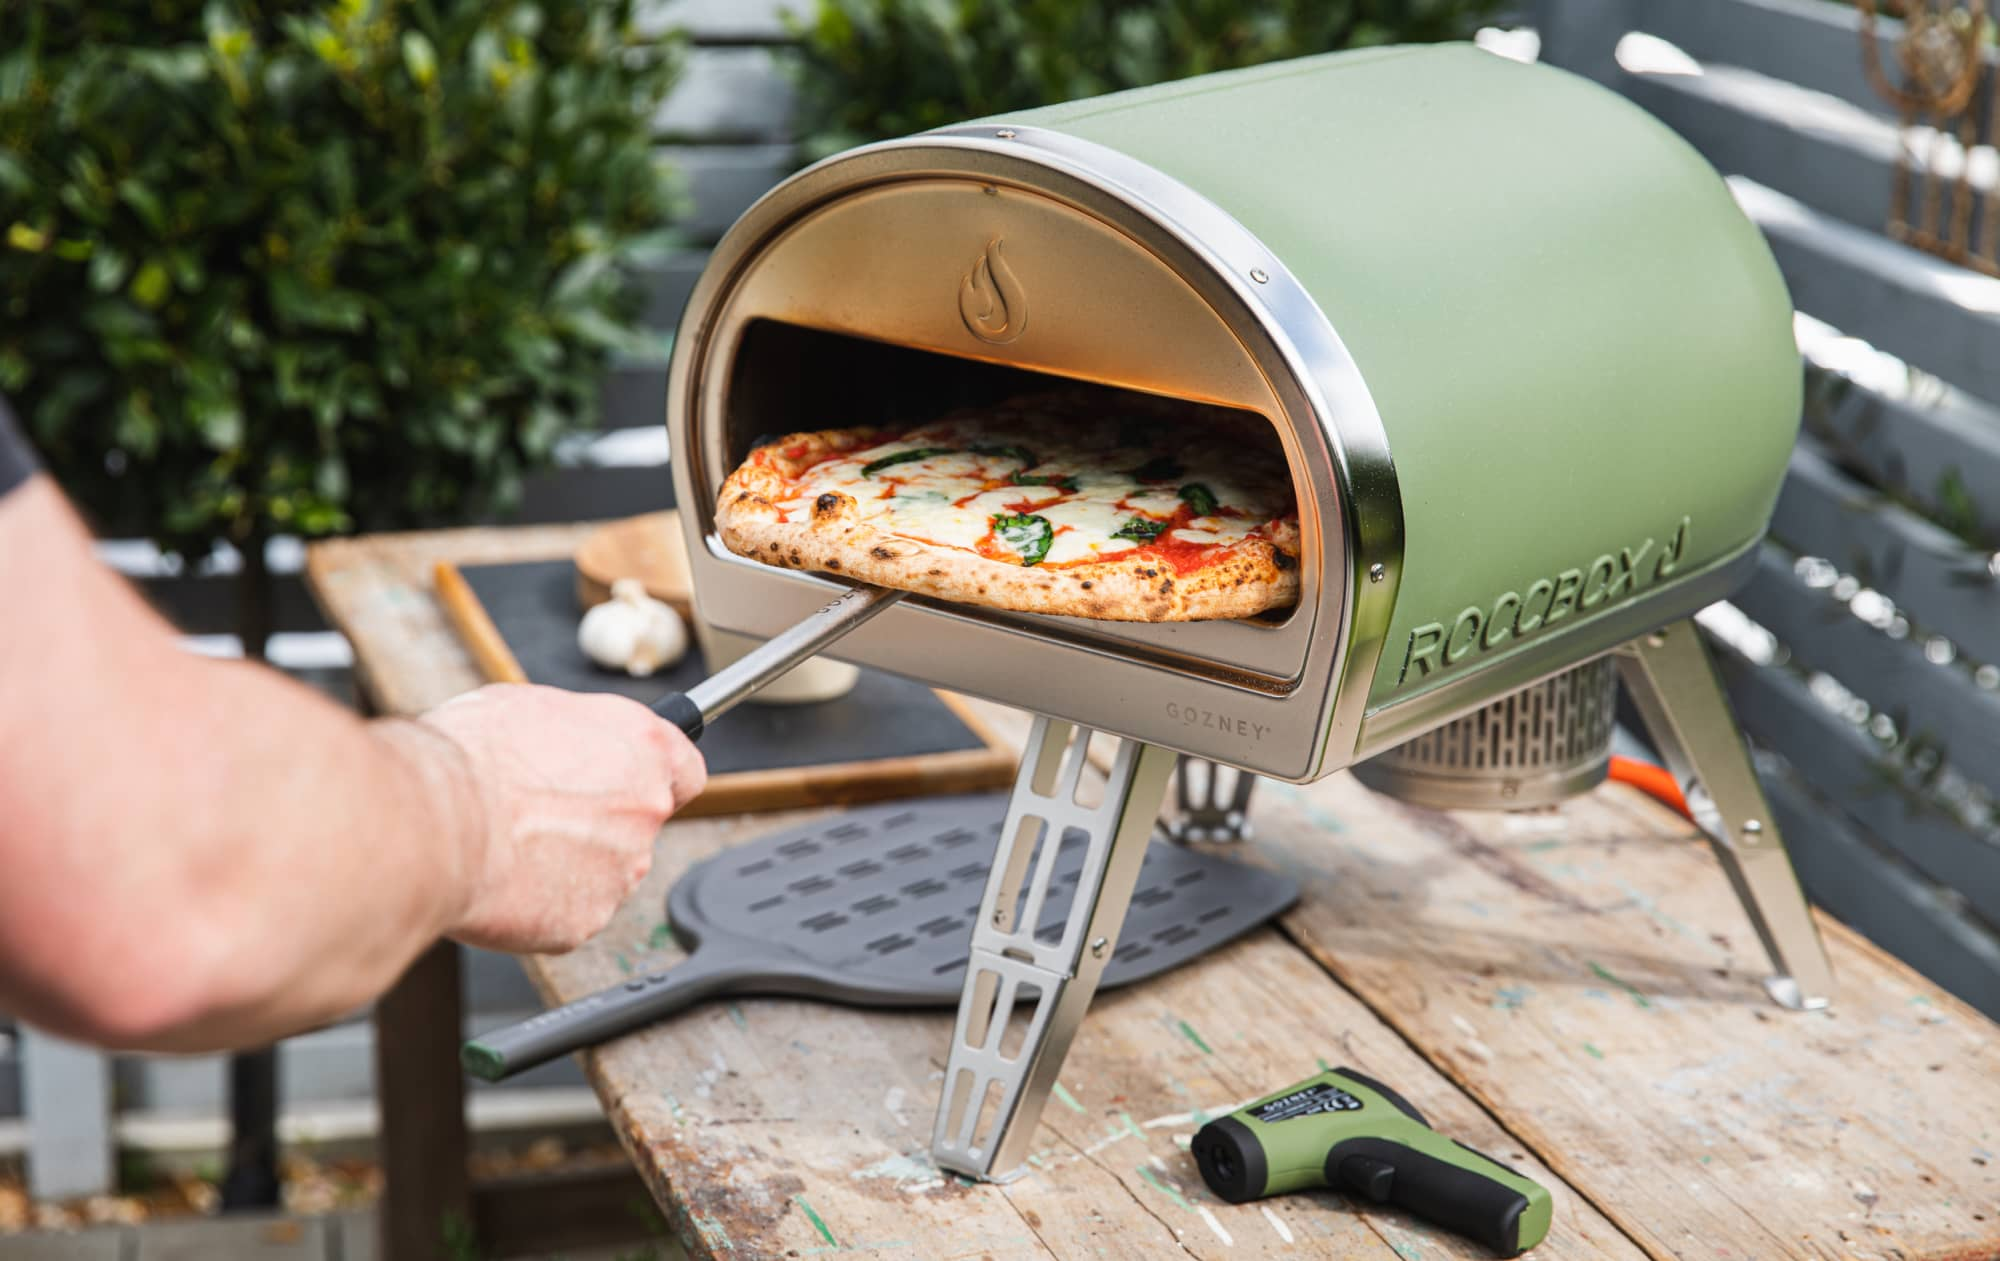 Someone tends to a pizza in the Gozney Roccbox pizza oven